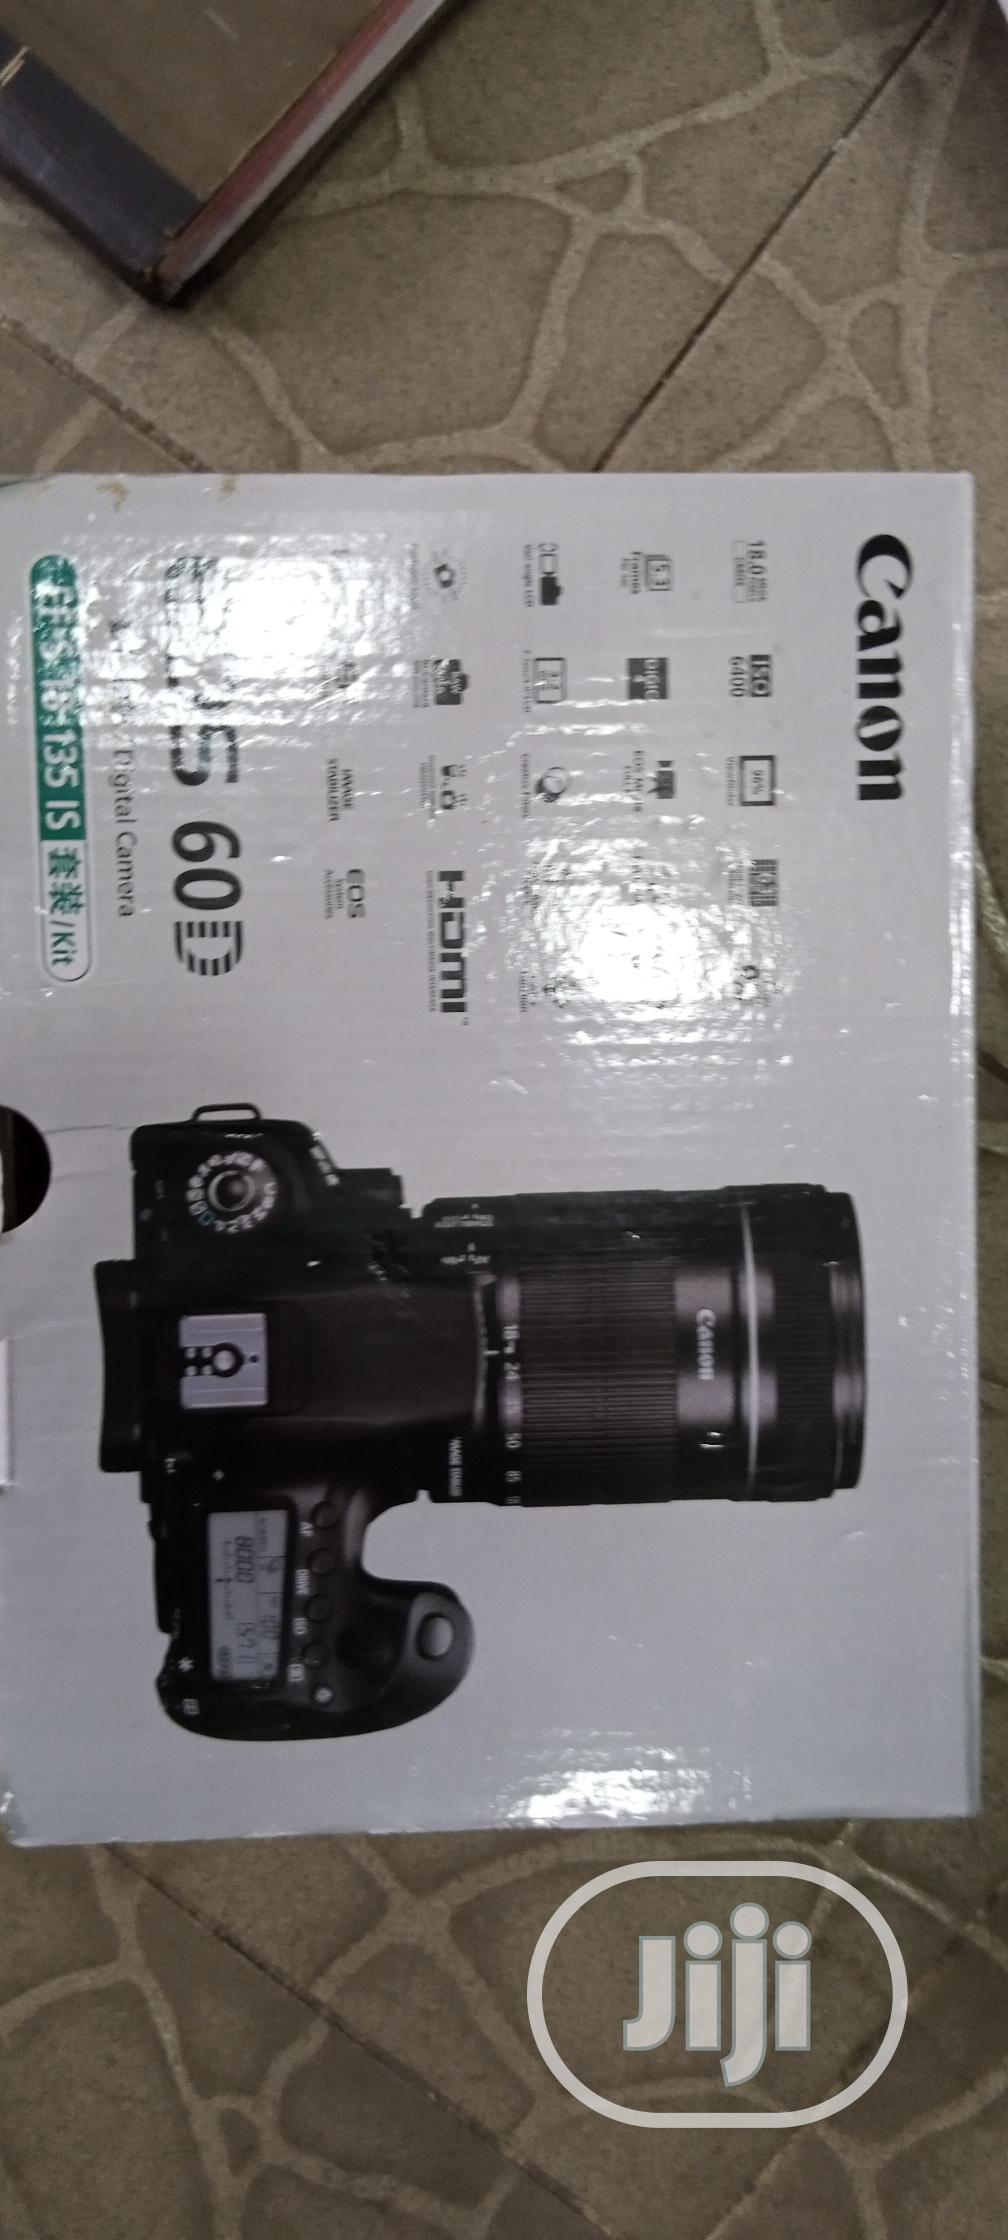 Canon 60D Camera | Photo & Video Cameras for sale in Ikeja, Lagos State, Nigeria